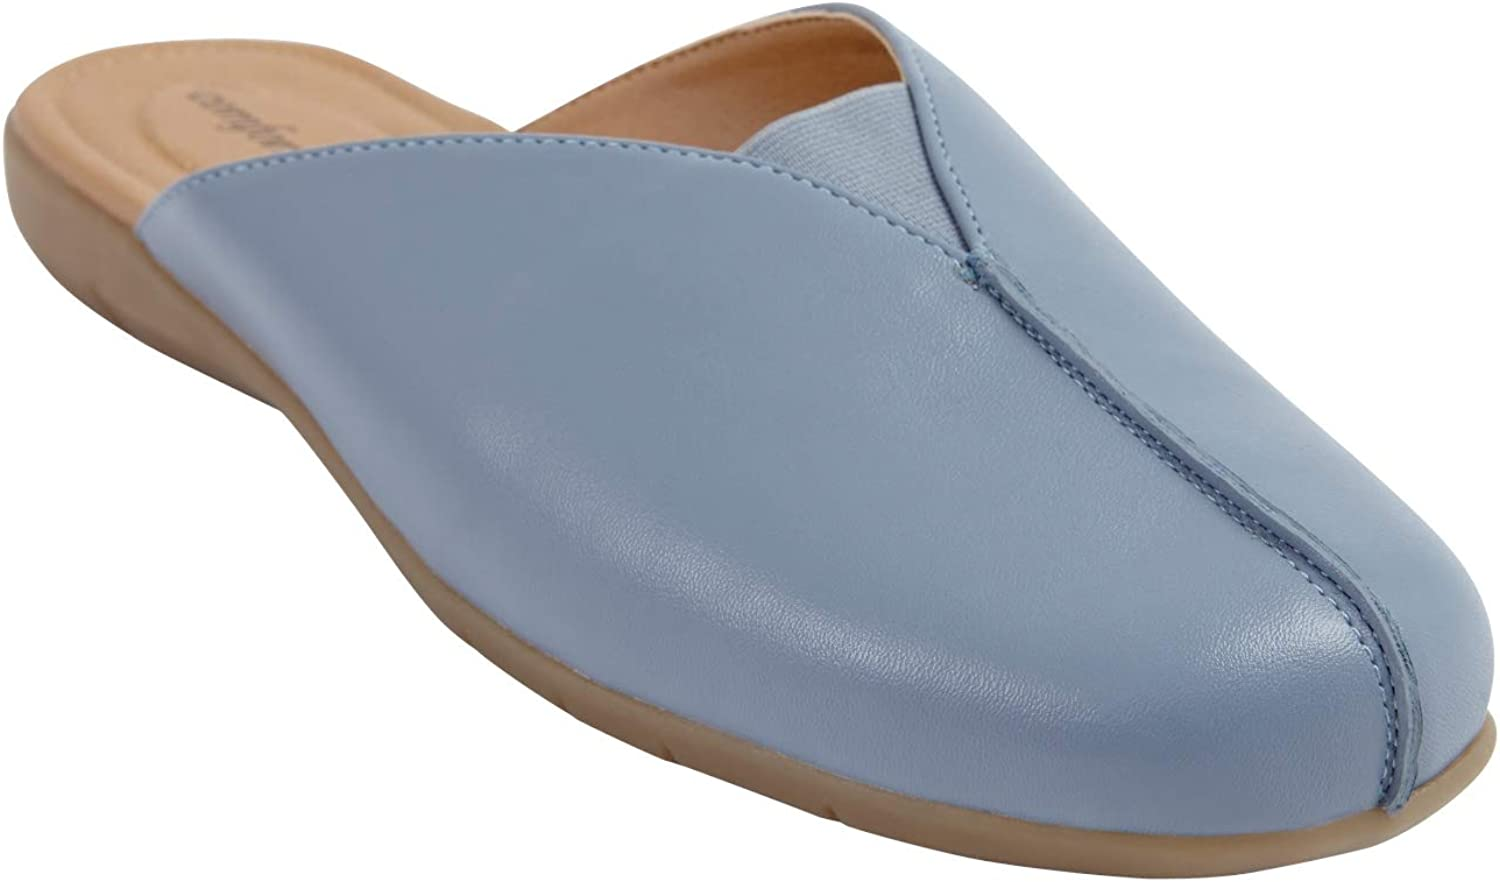 Comfortview Women's Wide Width The Alexane Cheap mail order Max 78% OFF specialty store Mule